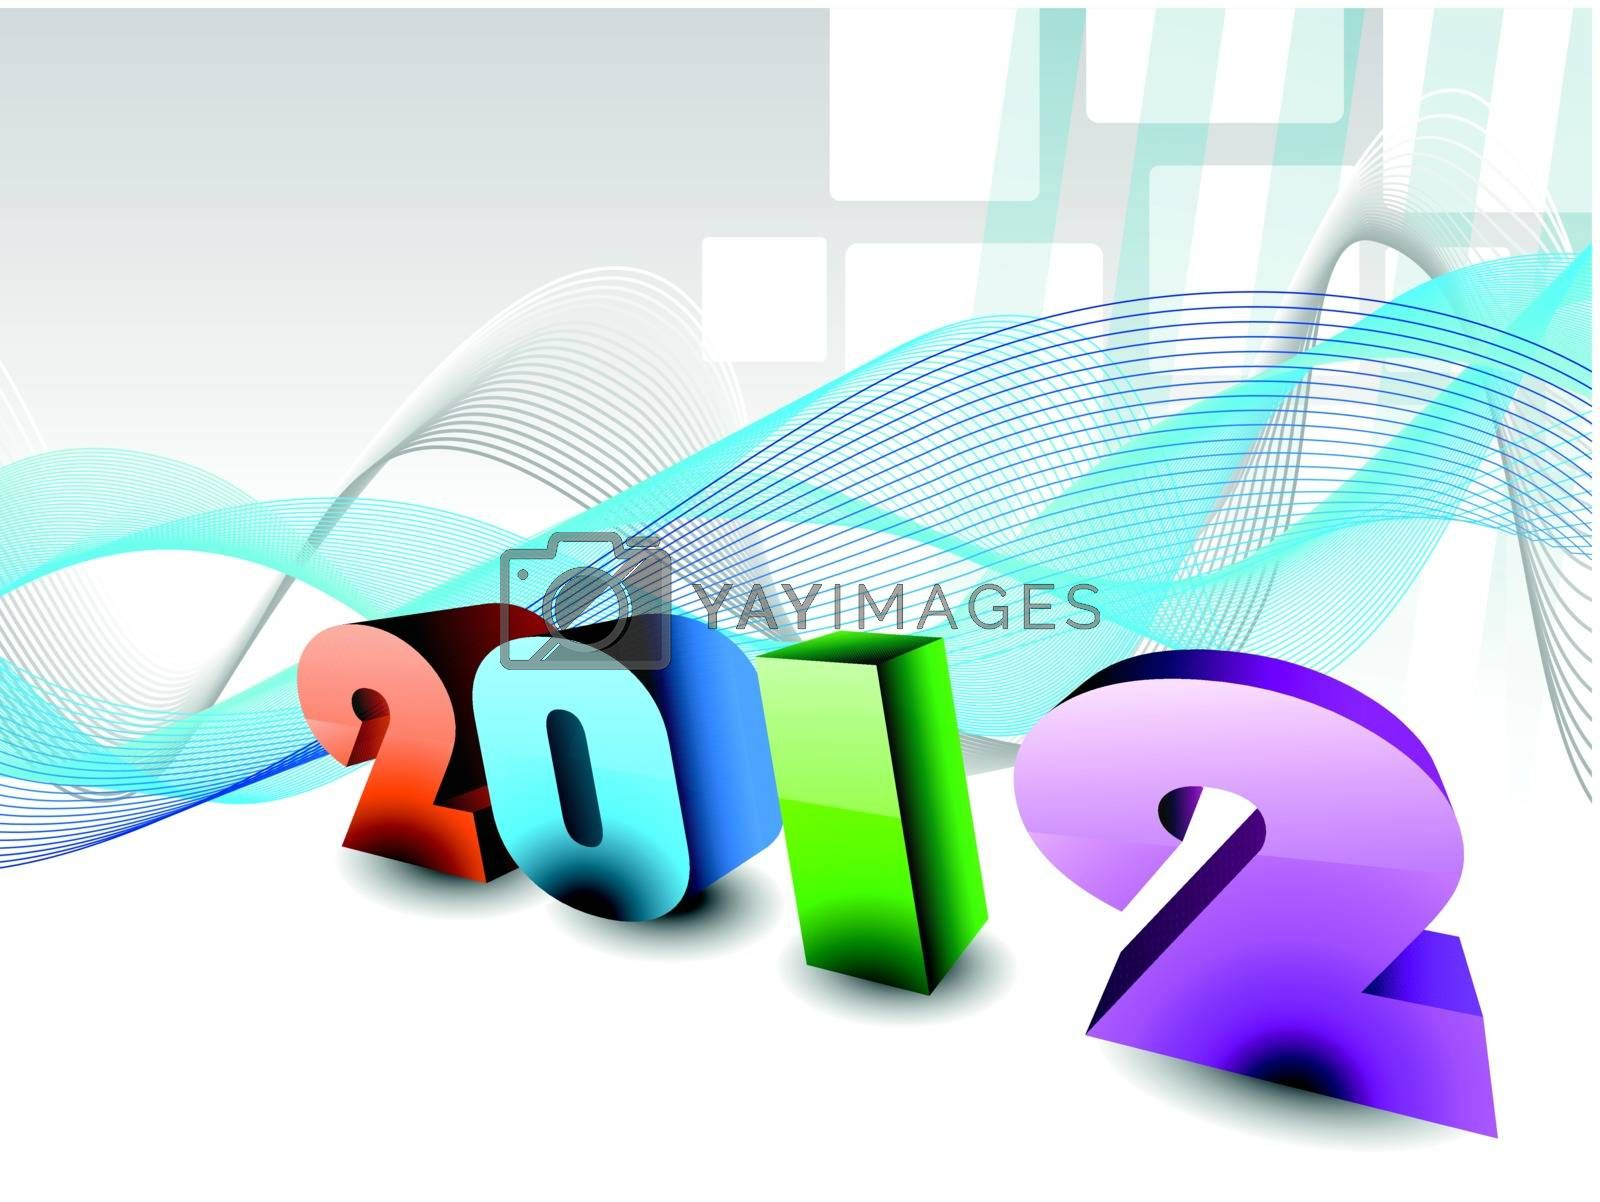 abstract design effect, wave background with 3d 2012 happy new year text